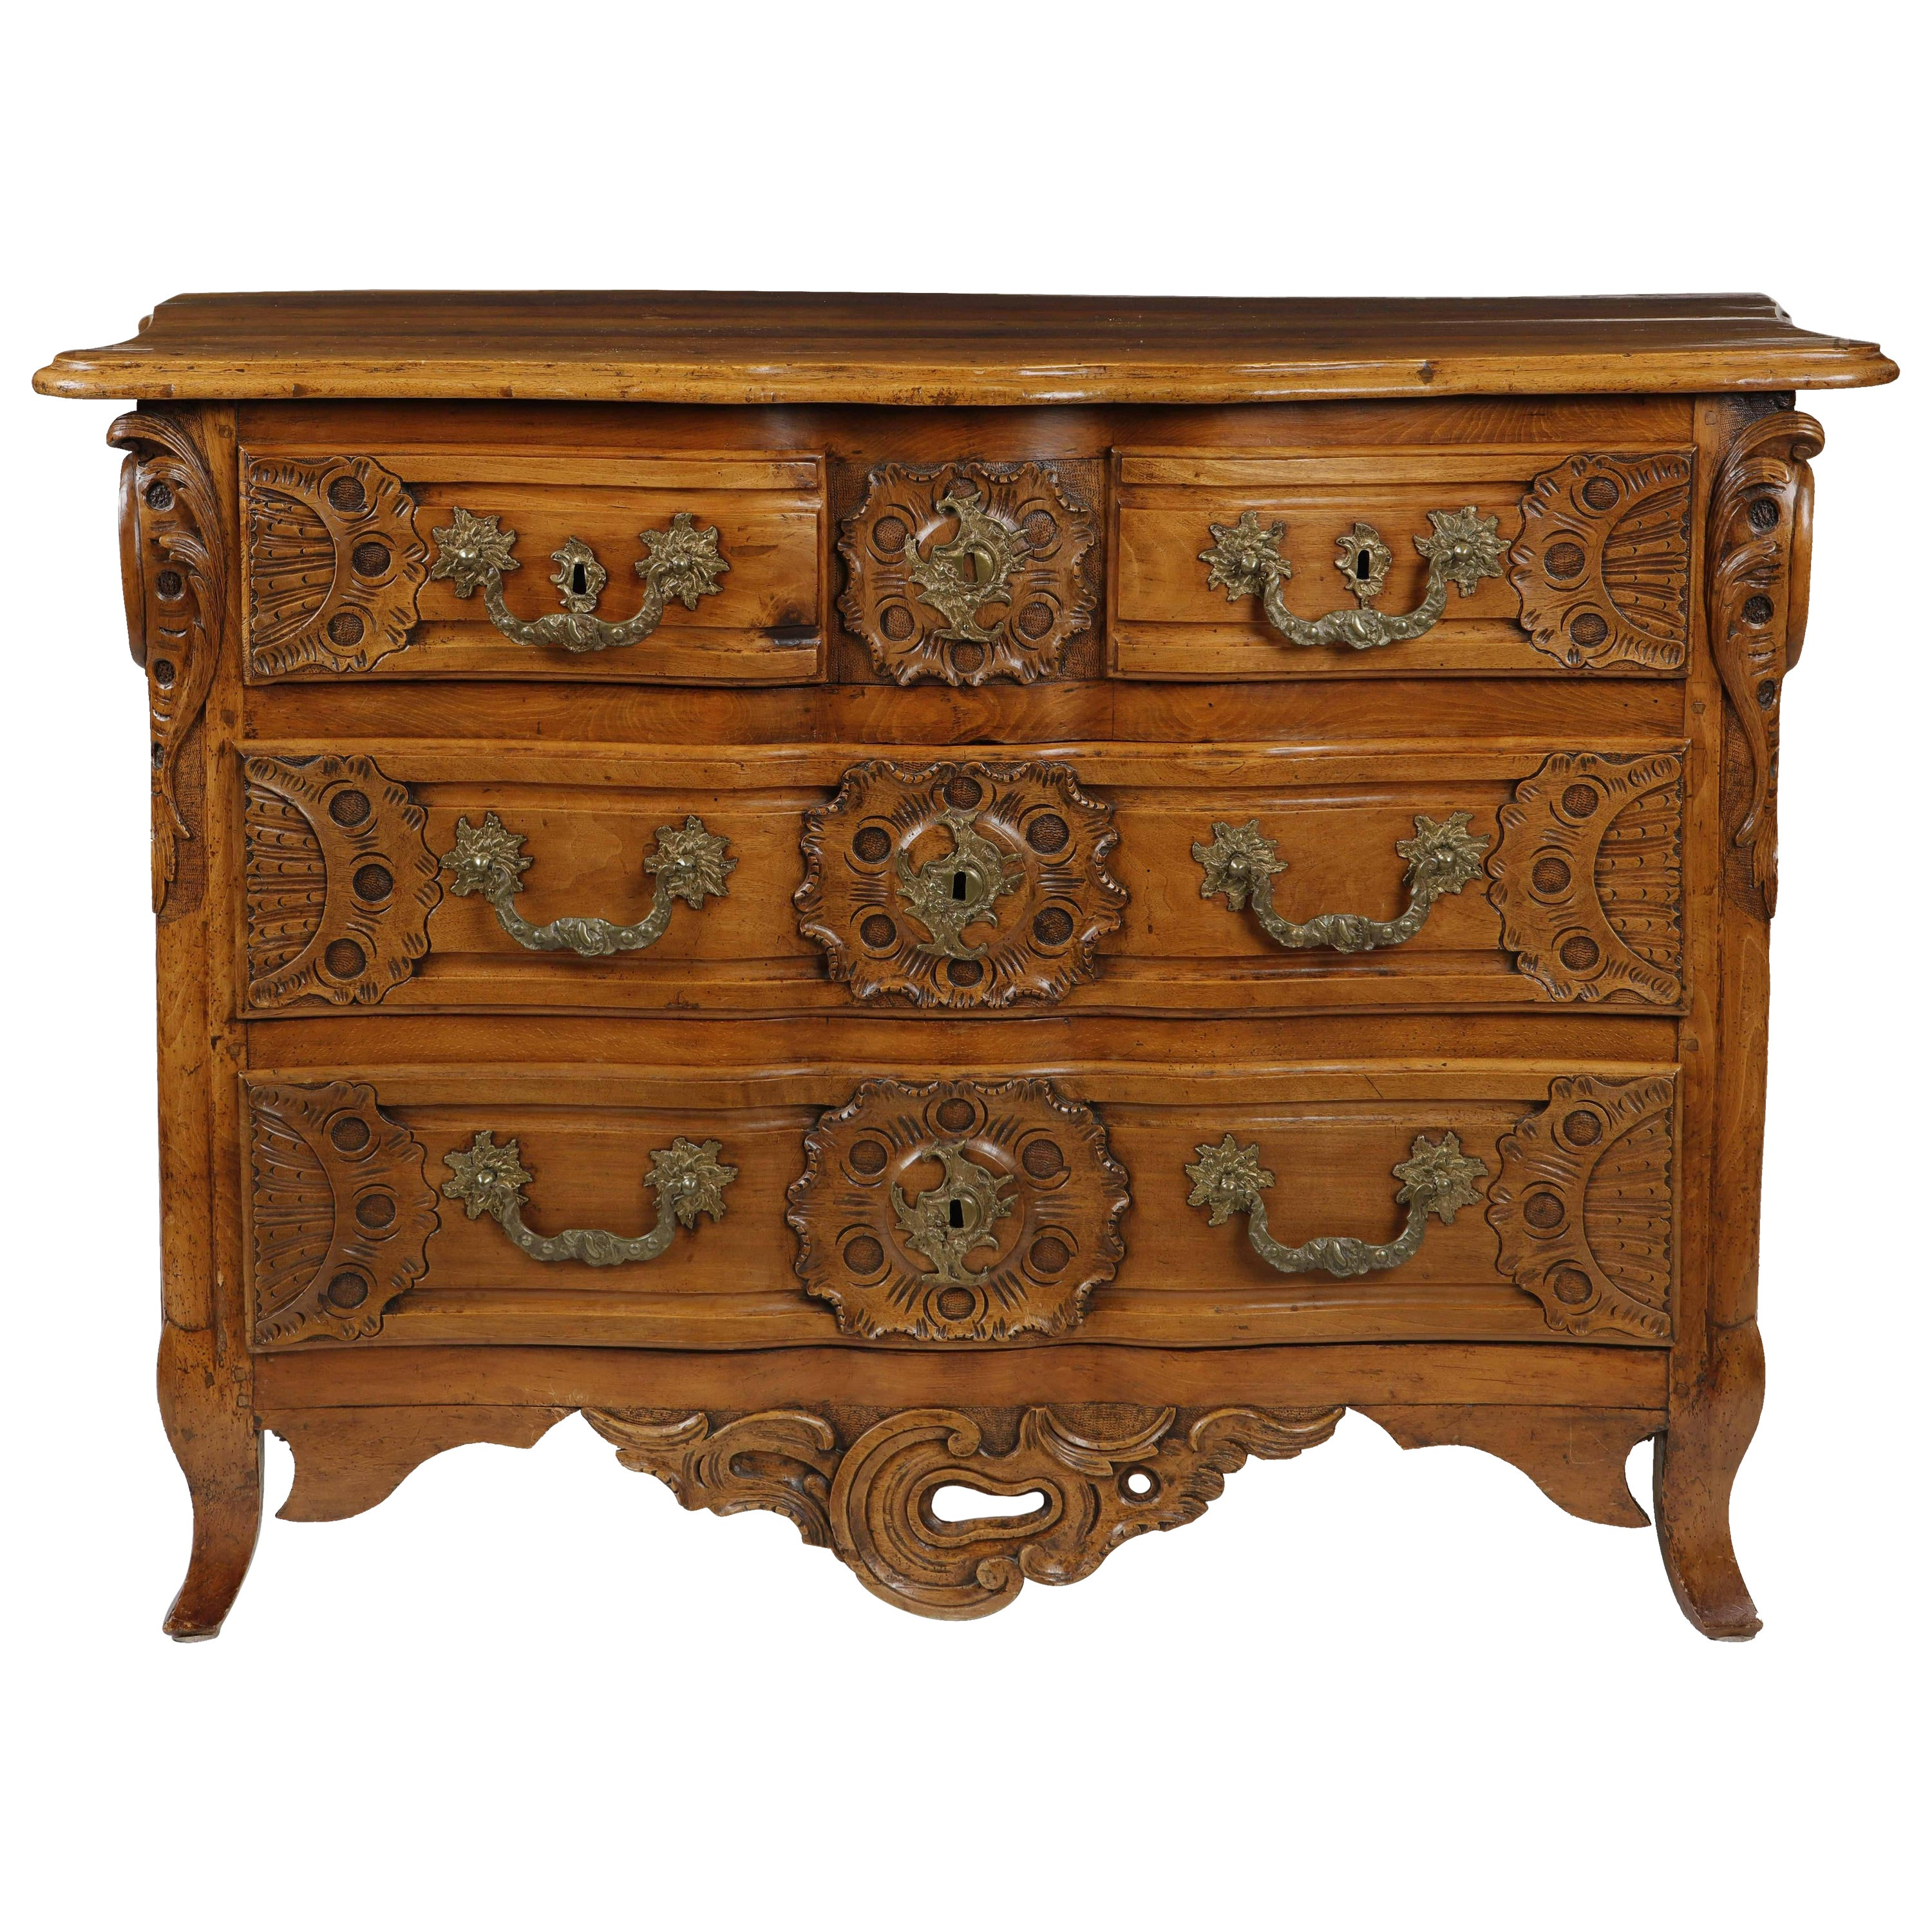 Louis XV Carved Walnut Commode, 18th Century